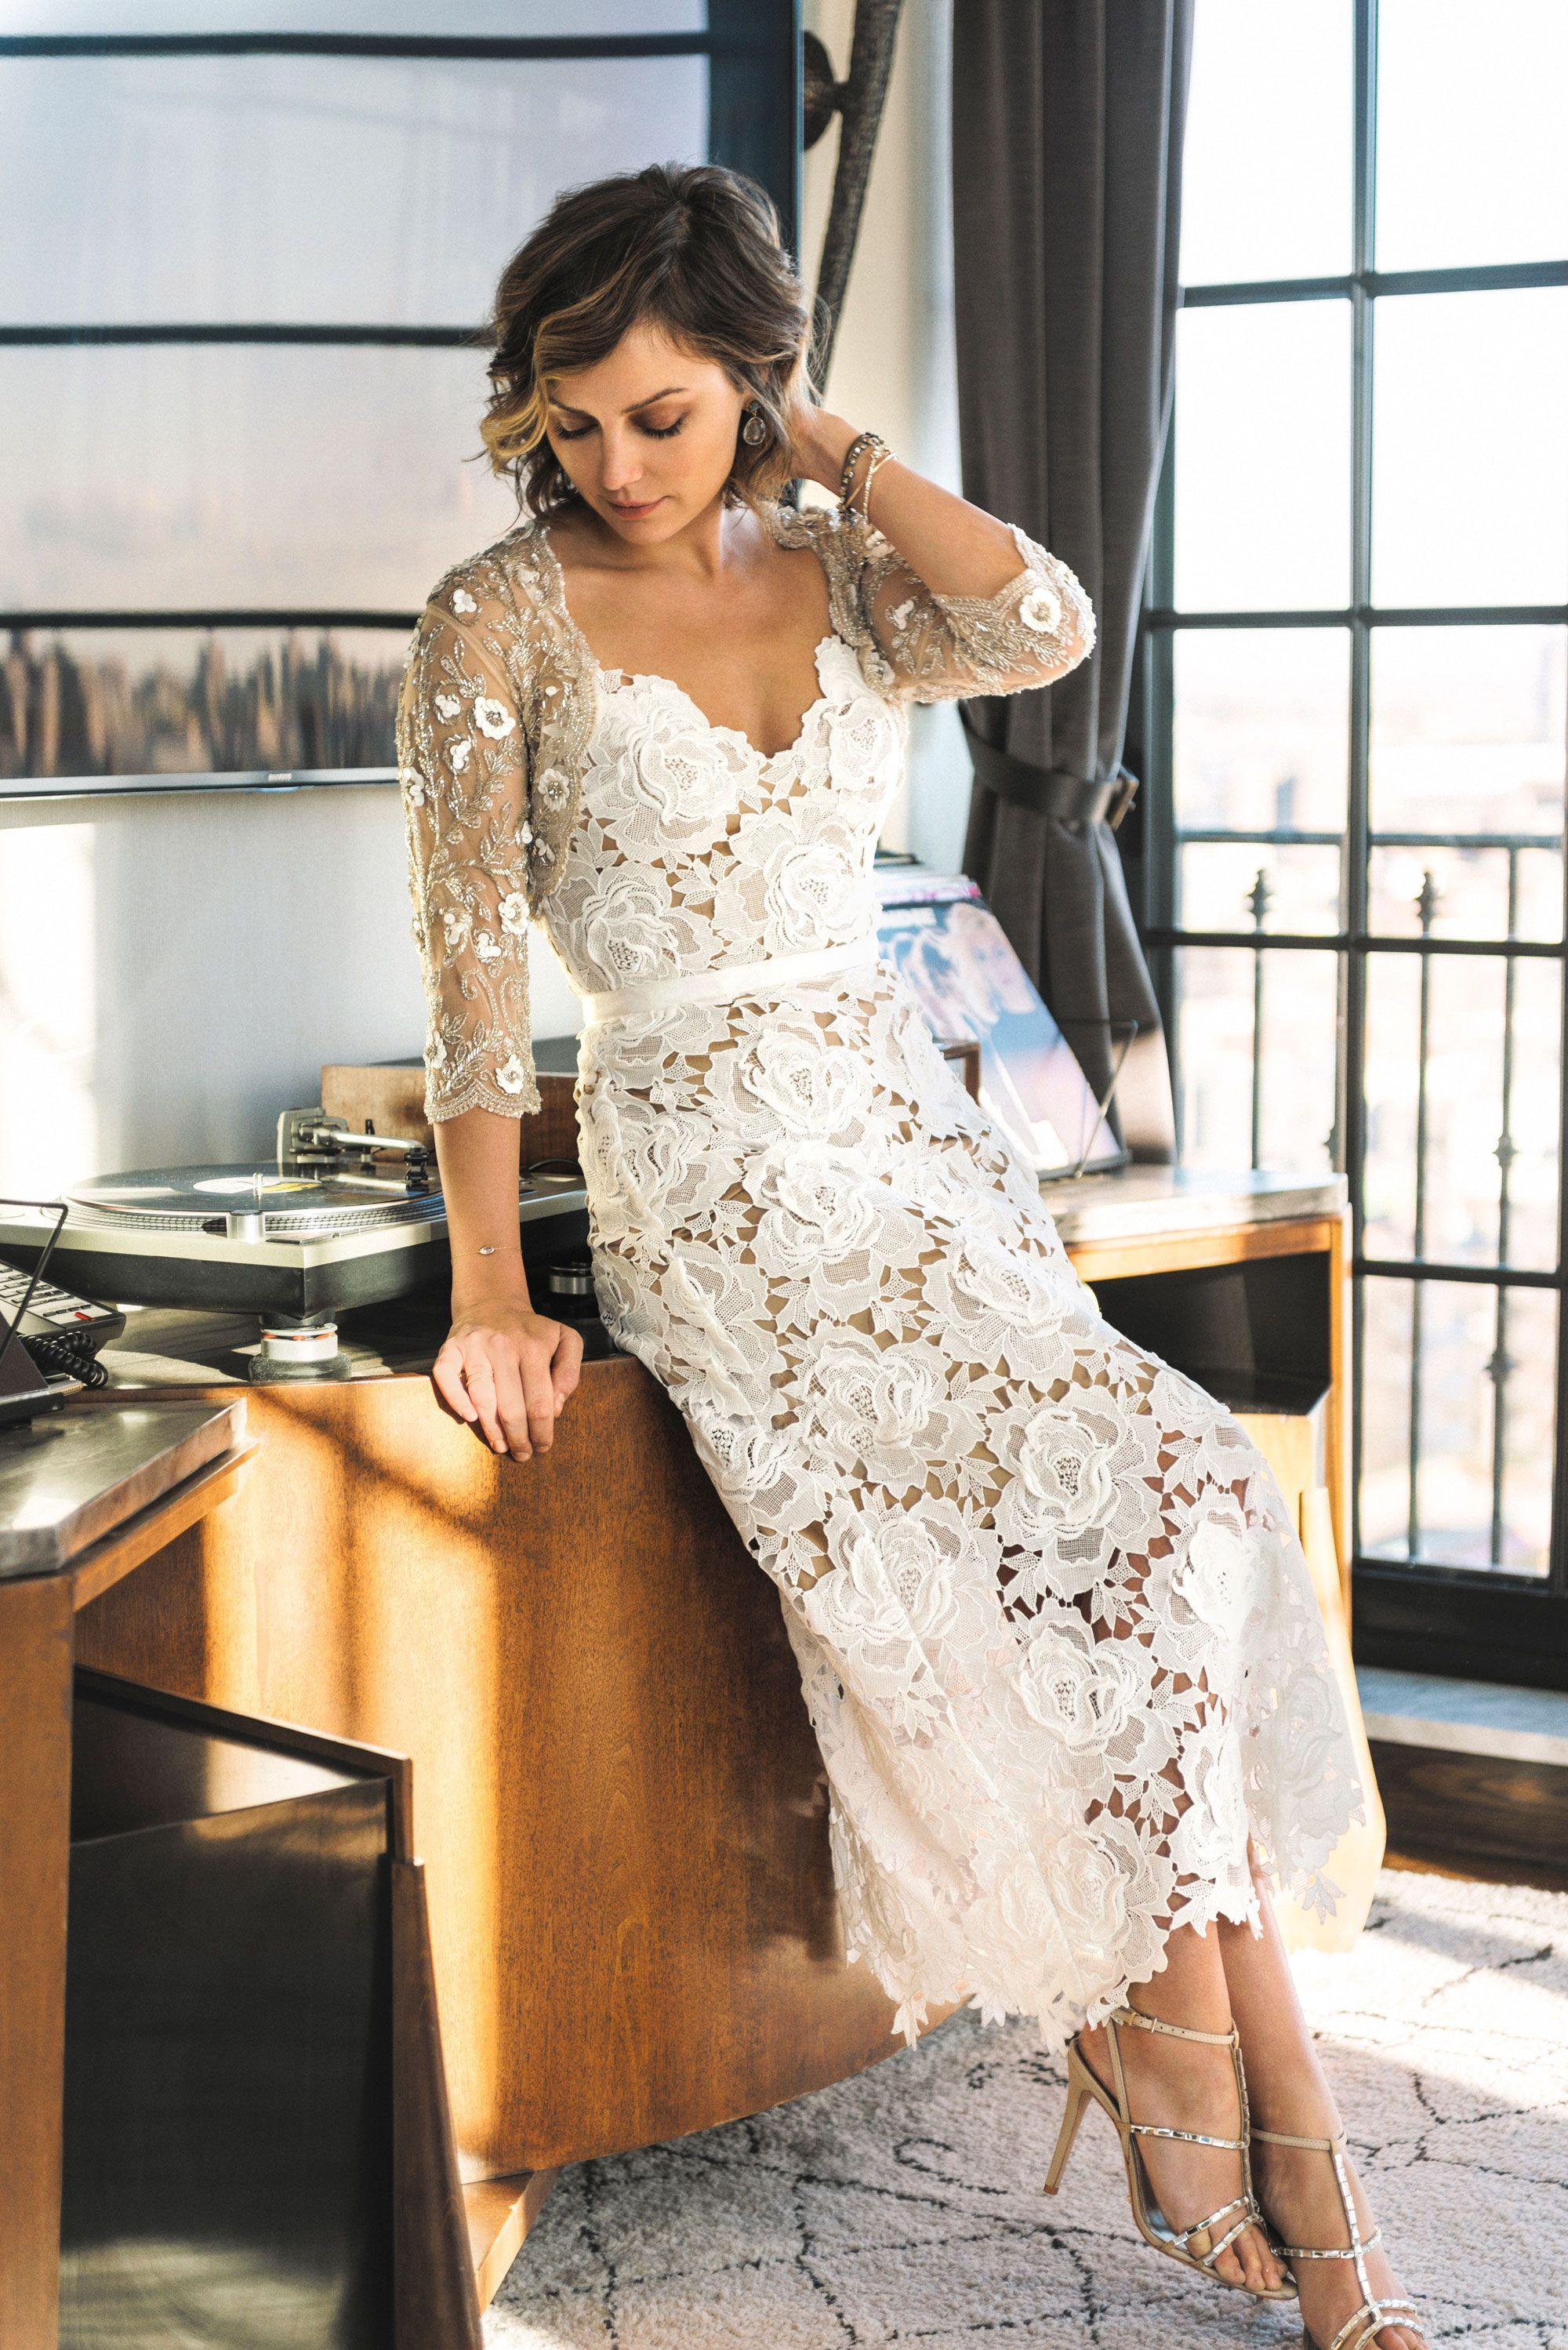 The Glamourai looked stunning in romantic lace & subtle sparkle for ...